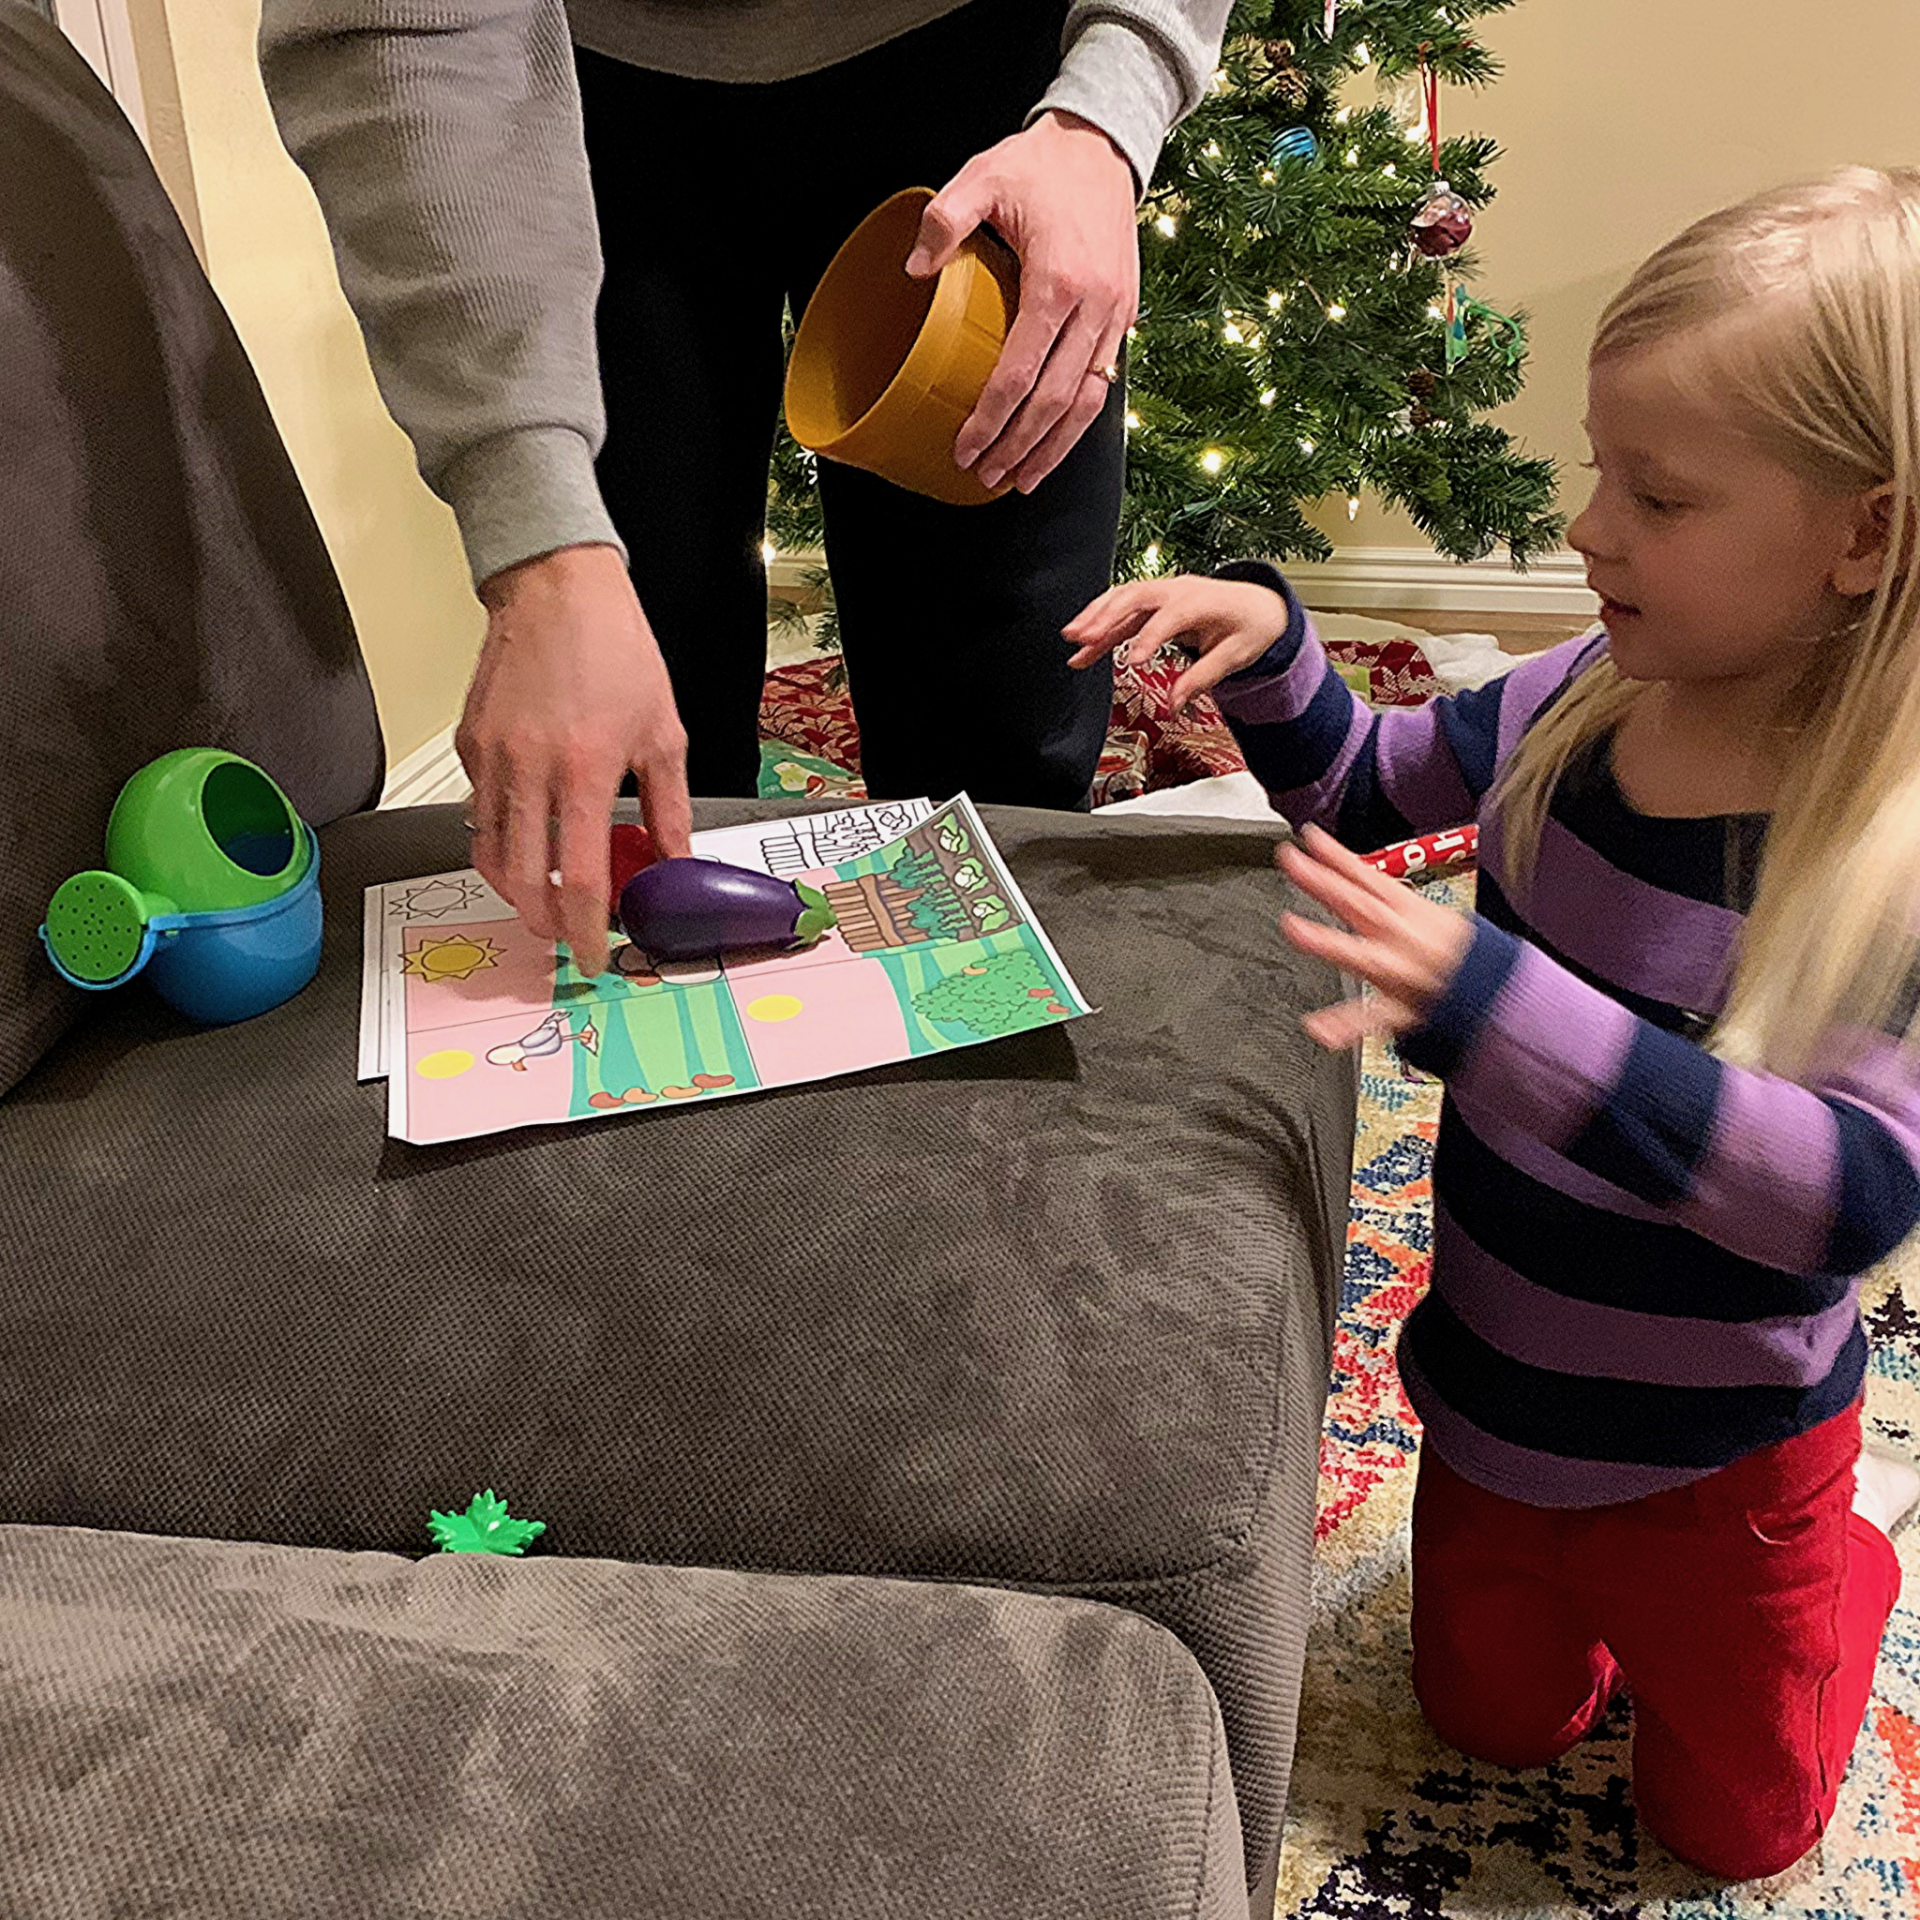 Hometeaching Ideas For November 2019 Family Home Teaching – Resources for the new 2019 LDS Come Follow